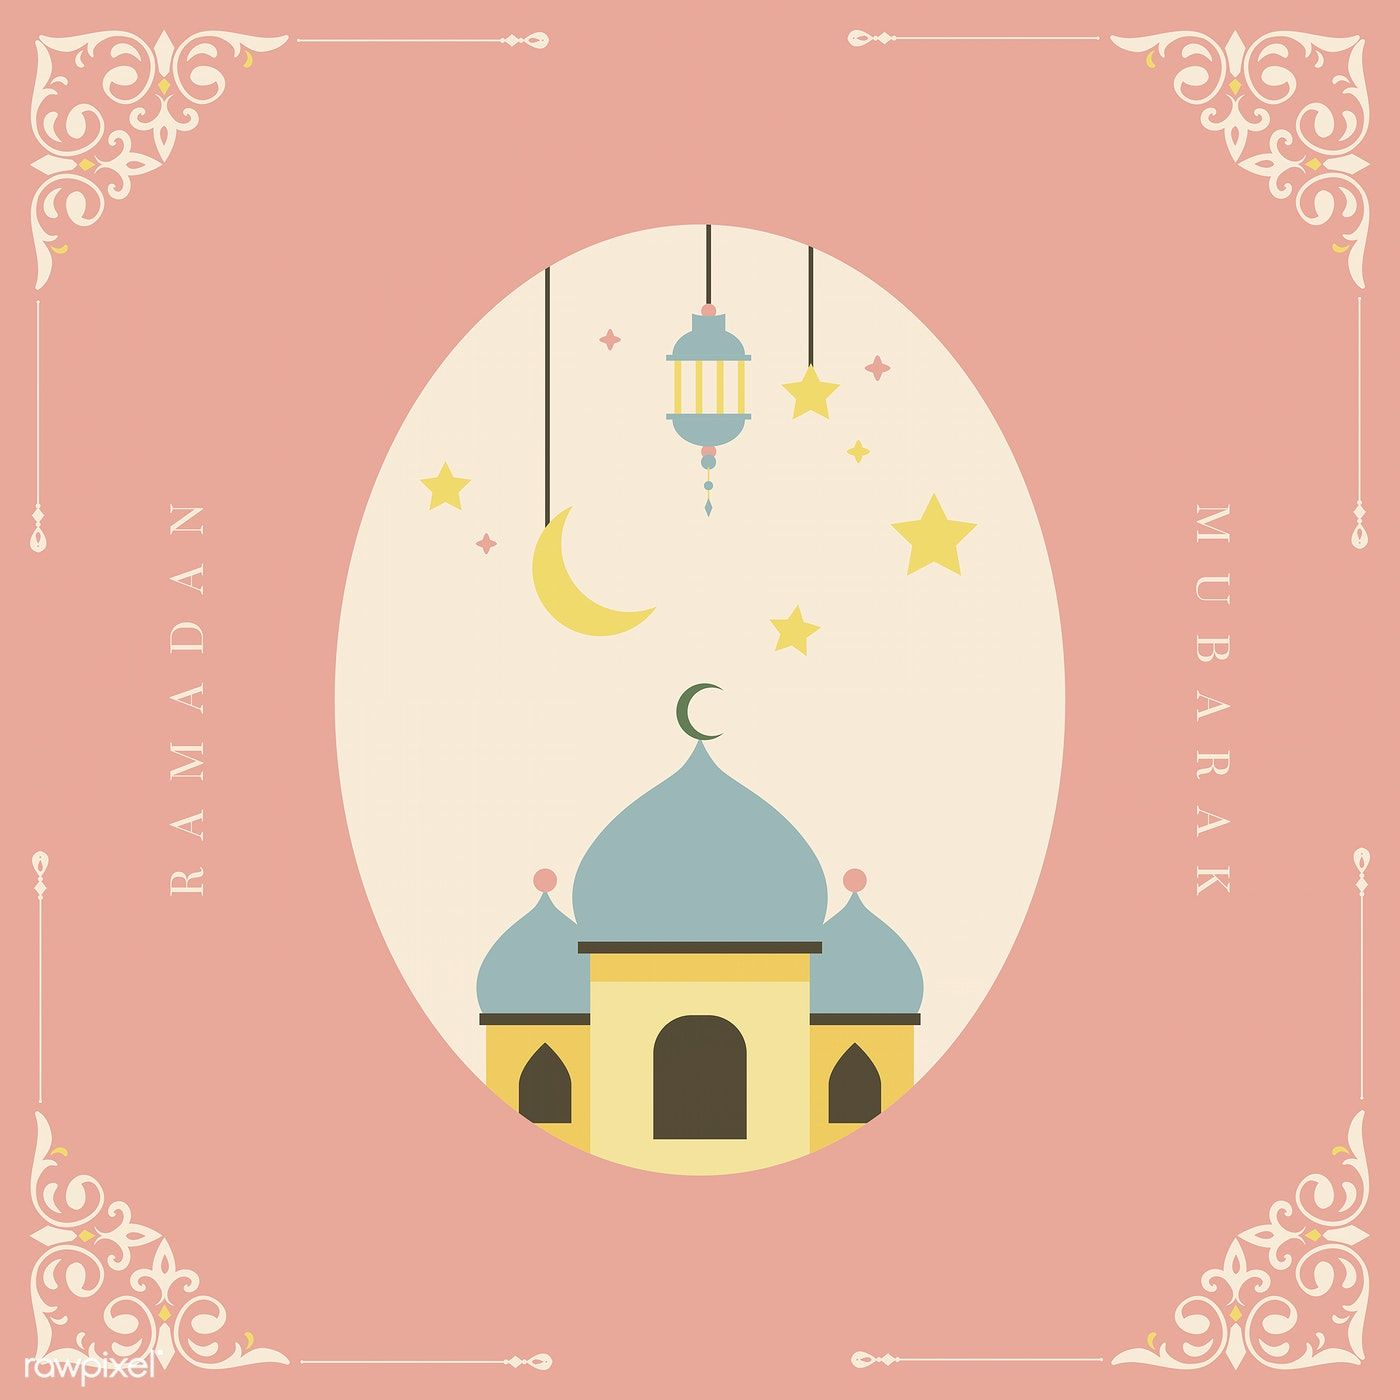 Ramadan Mubarak Card With Mosque Vector Free Image By Rawpixel